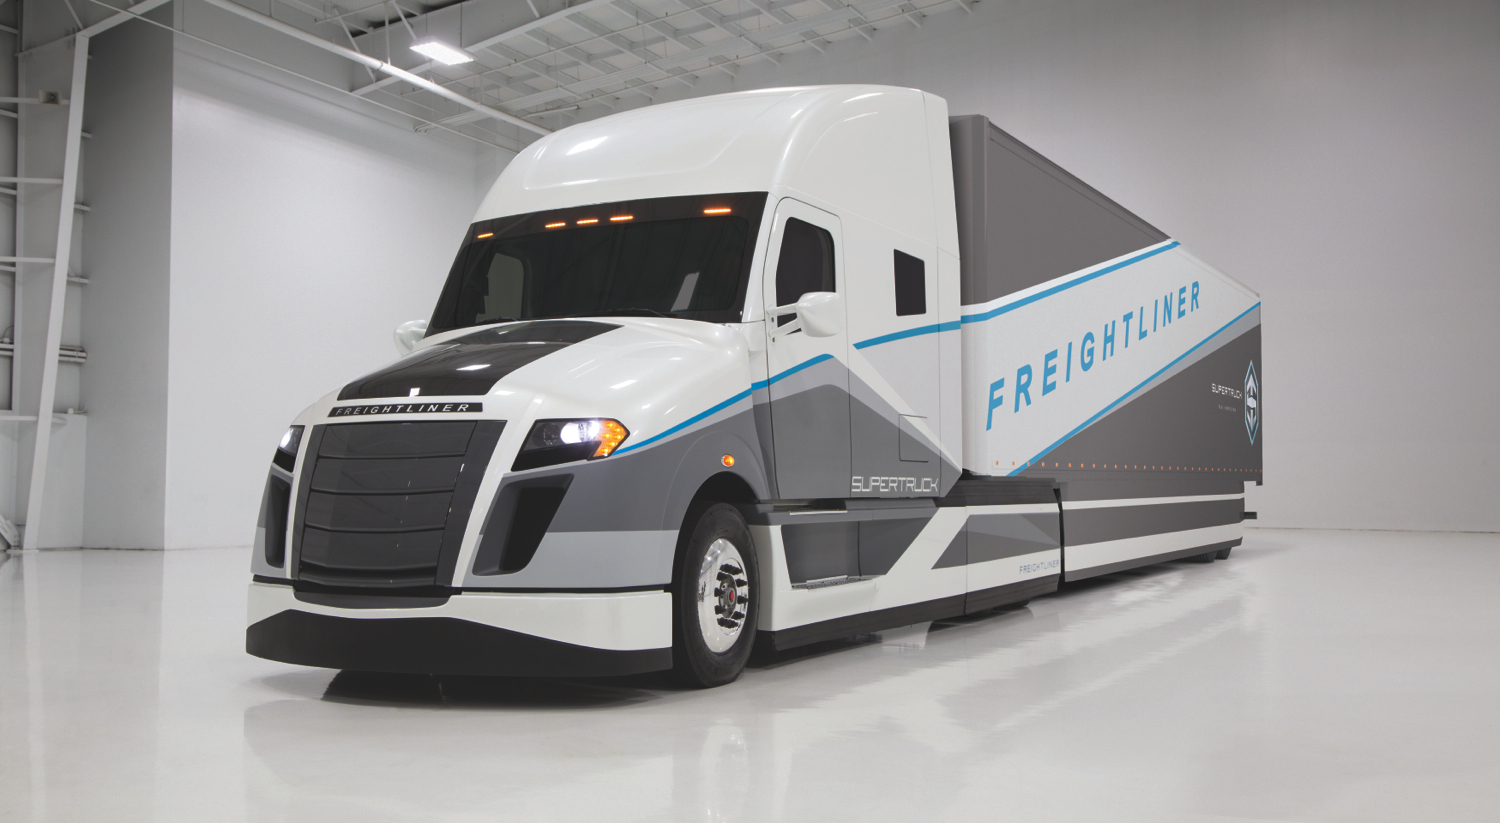 Proposed 2021 Fuel Economy Rules For Heavy-Duty Trucks, Buses Released